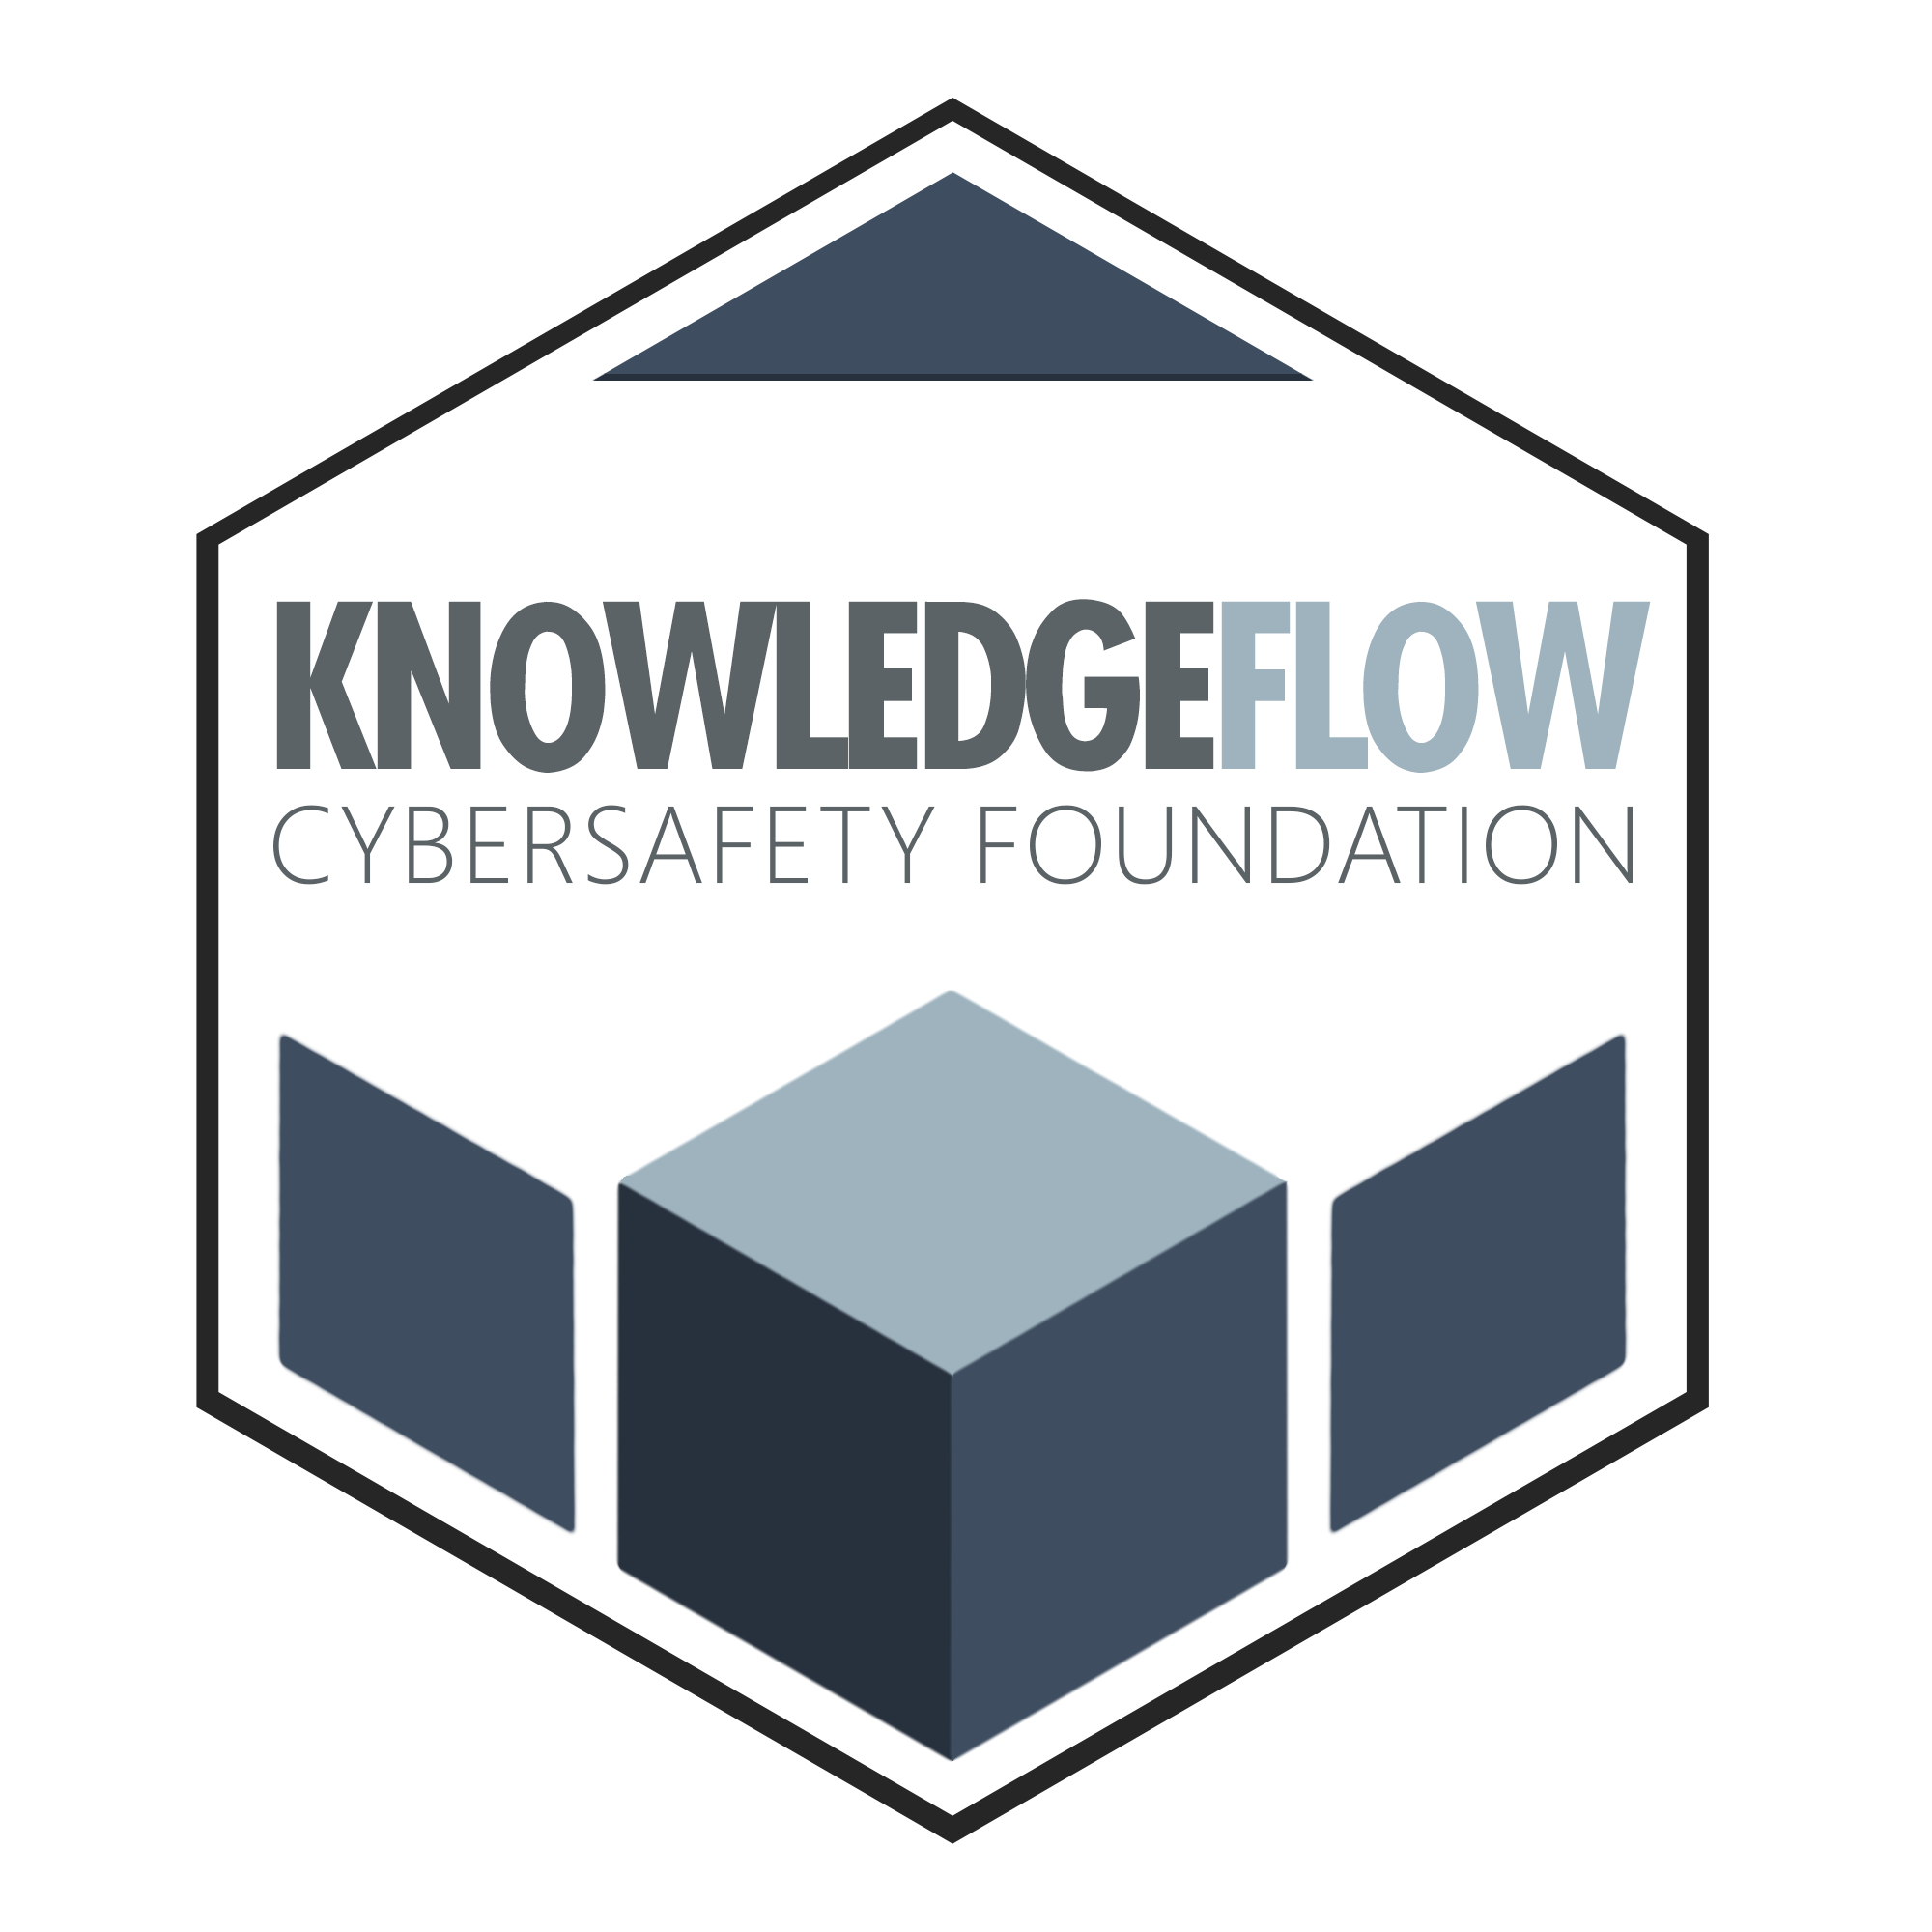 Innovative Cybersafety Bootcamp for Ontario Students adds Social Responsibility and Identity Protection to Digital Literacy Curriculum